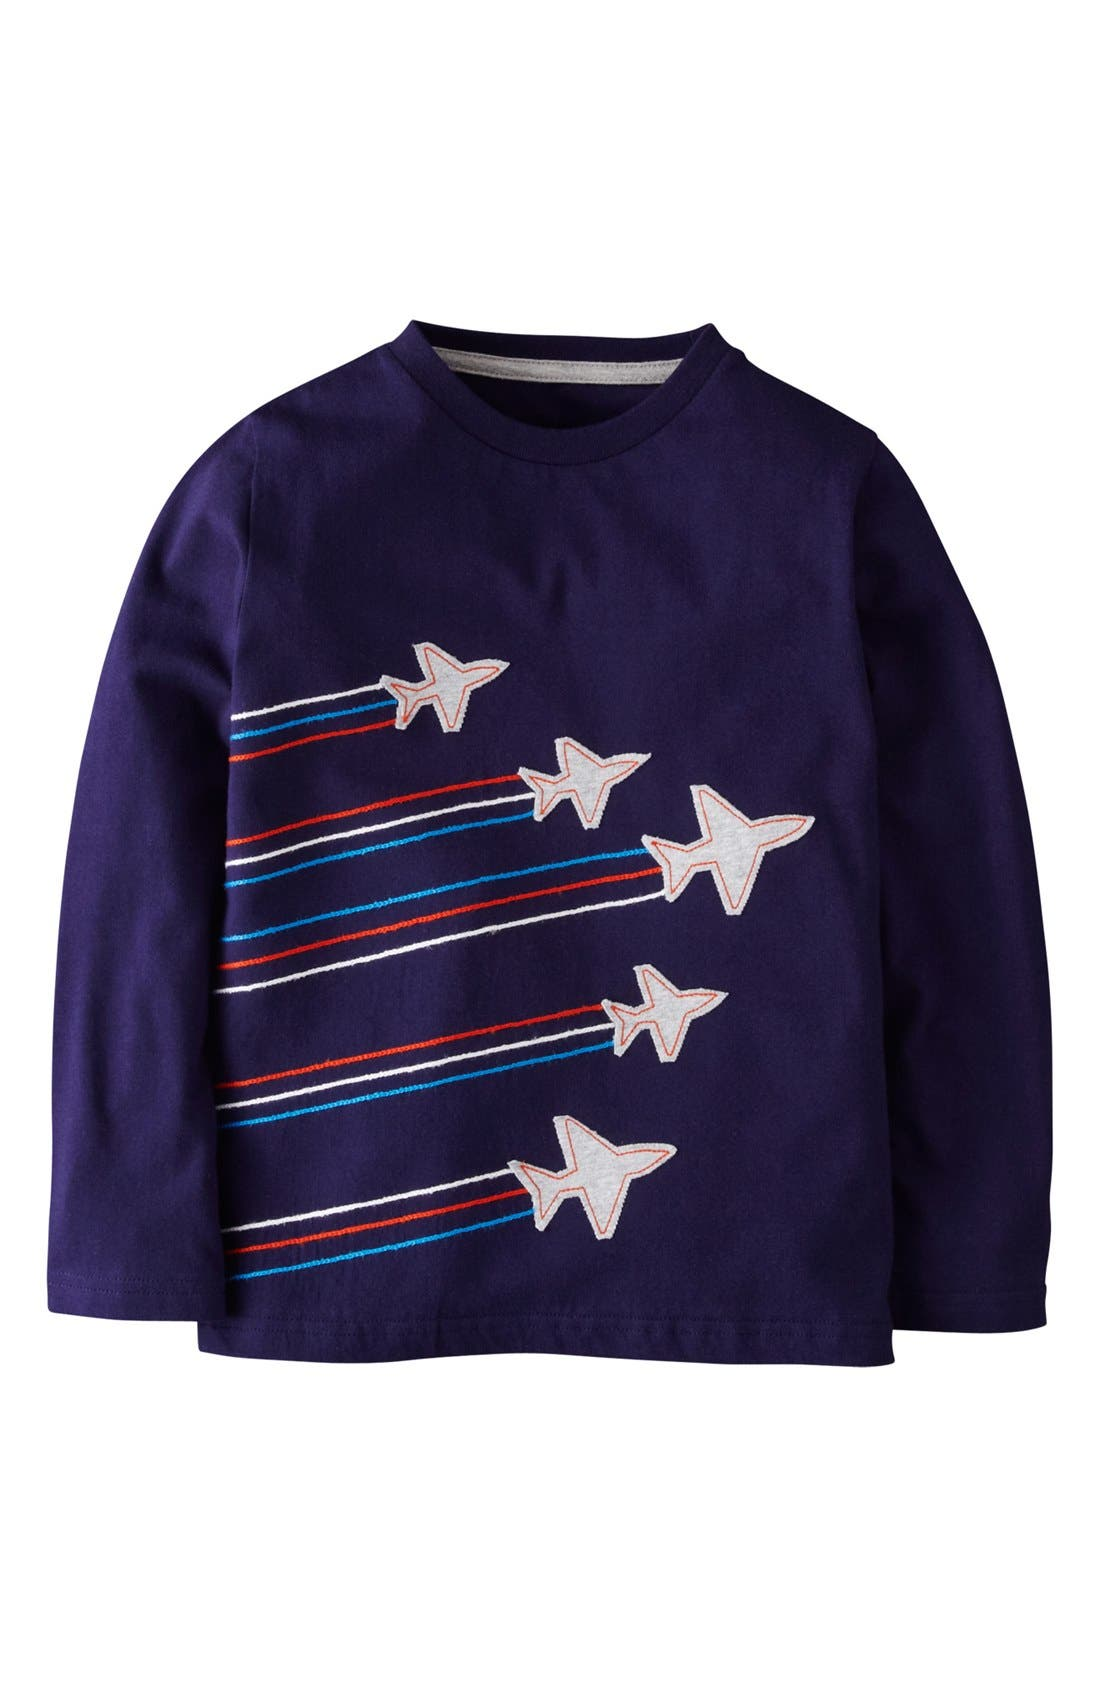 Main Image - Mini Boden Embroidered Appliqué T-Shirt (Toddler Boys, Little Boys & Big Boys)